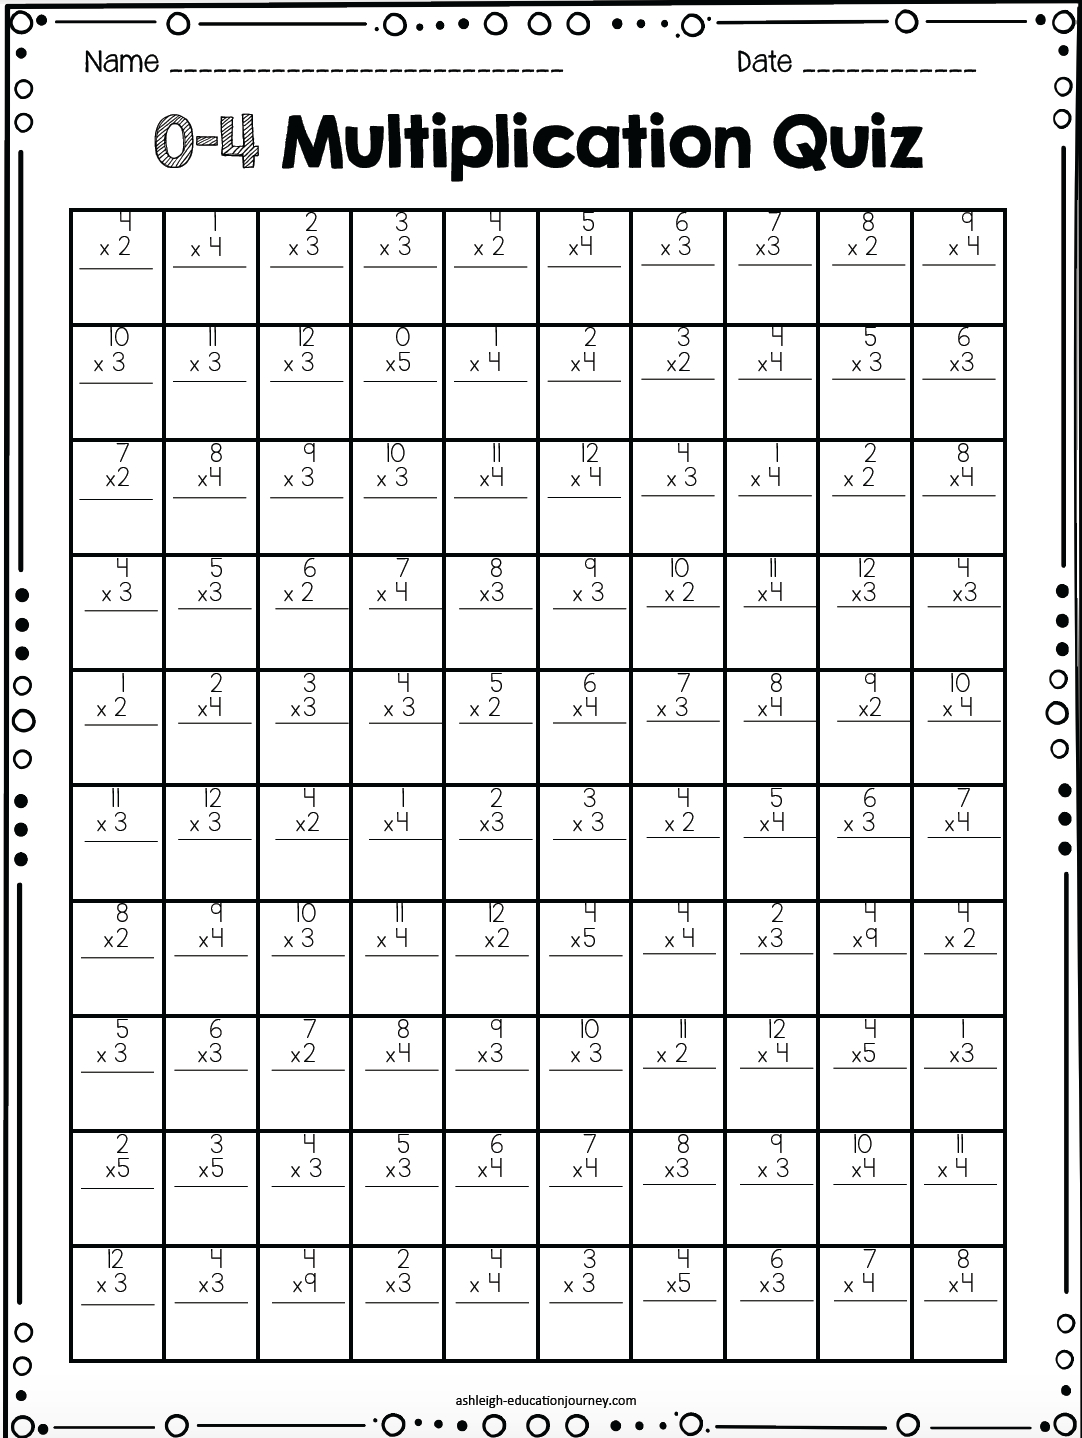 Multiplication Facts For Upper Elementary Students | Class - Free Printable Multiplication Timed Tests